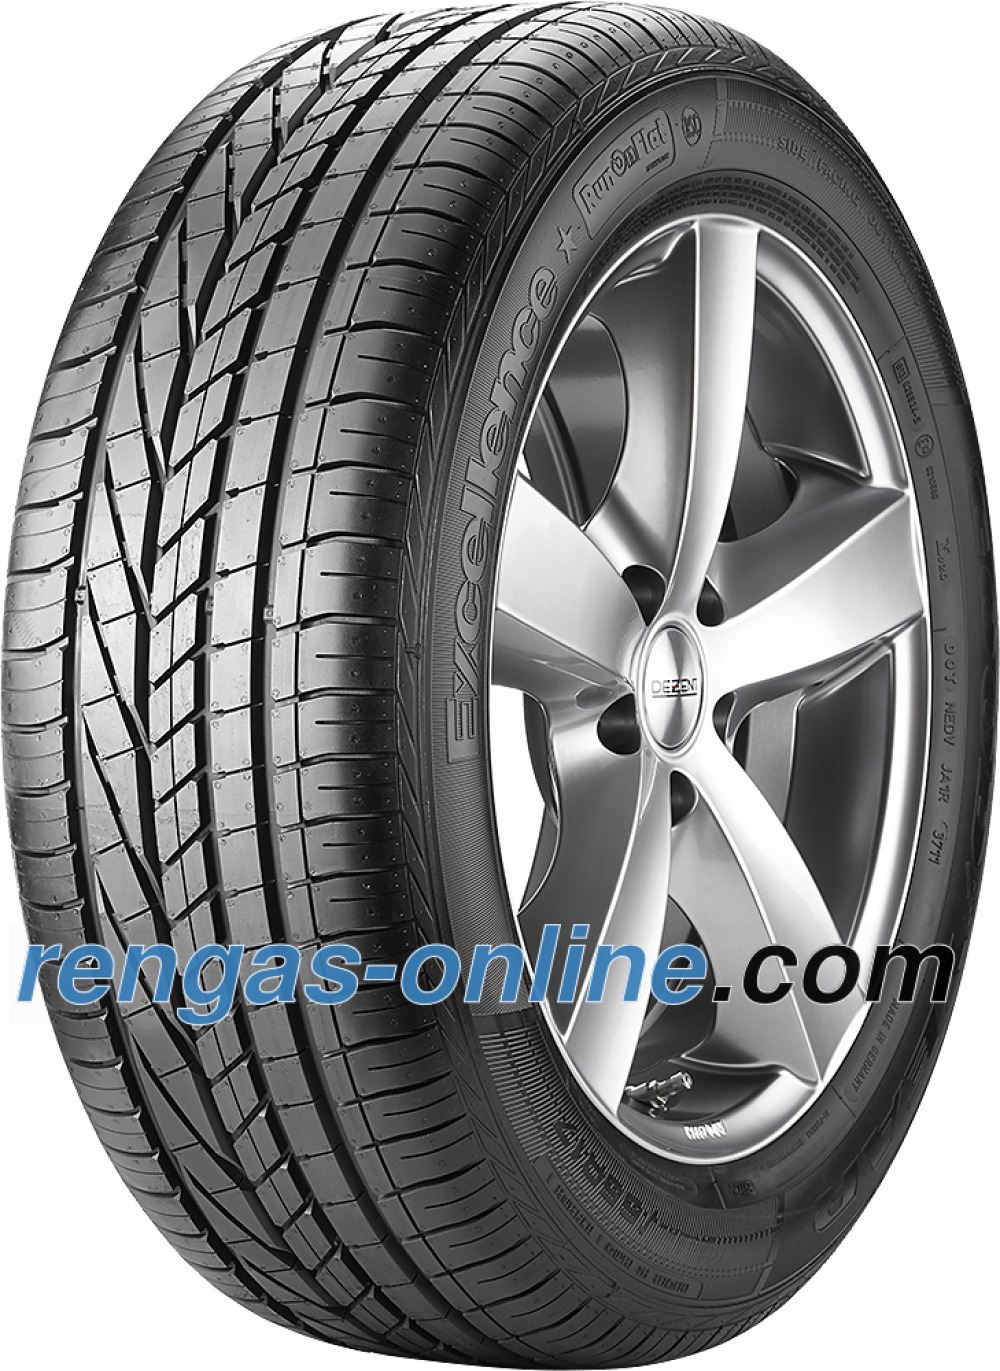 goodyear-excellence-rof-24540-r17-91y-moe-vannesuojalla-mfs-runflat